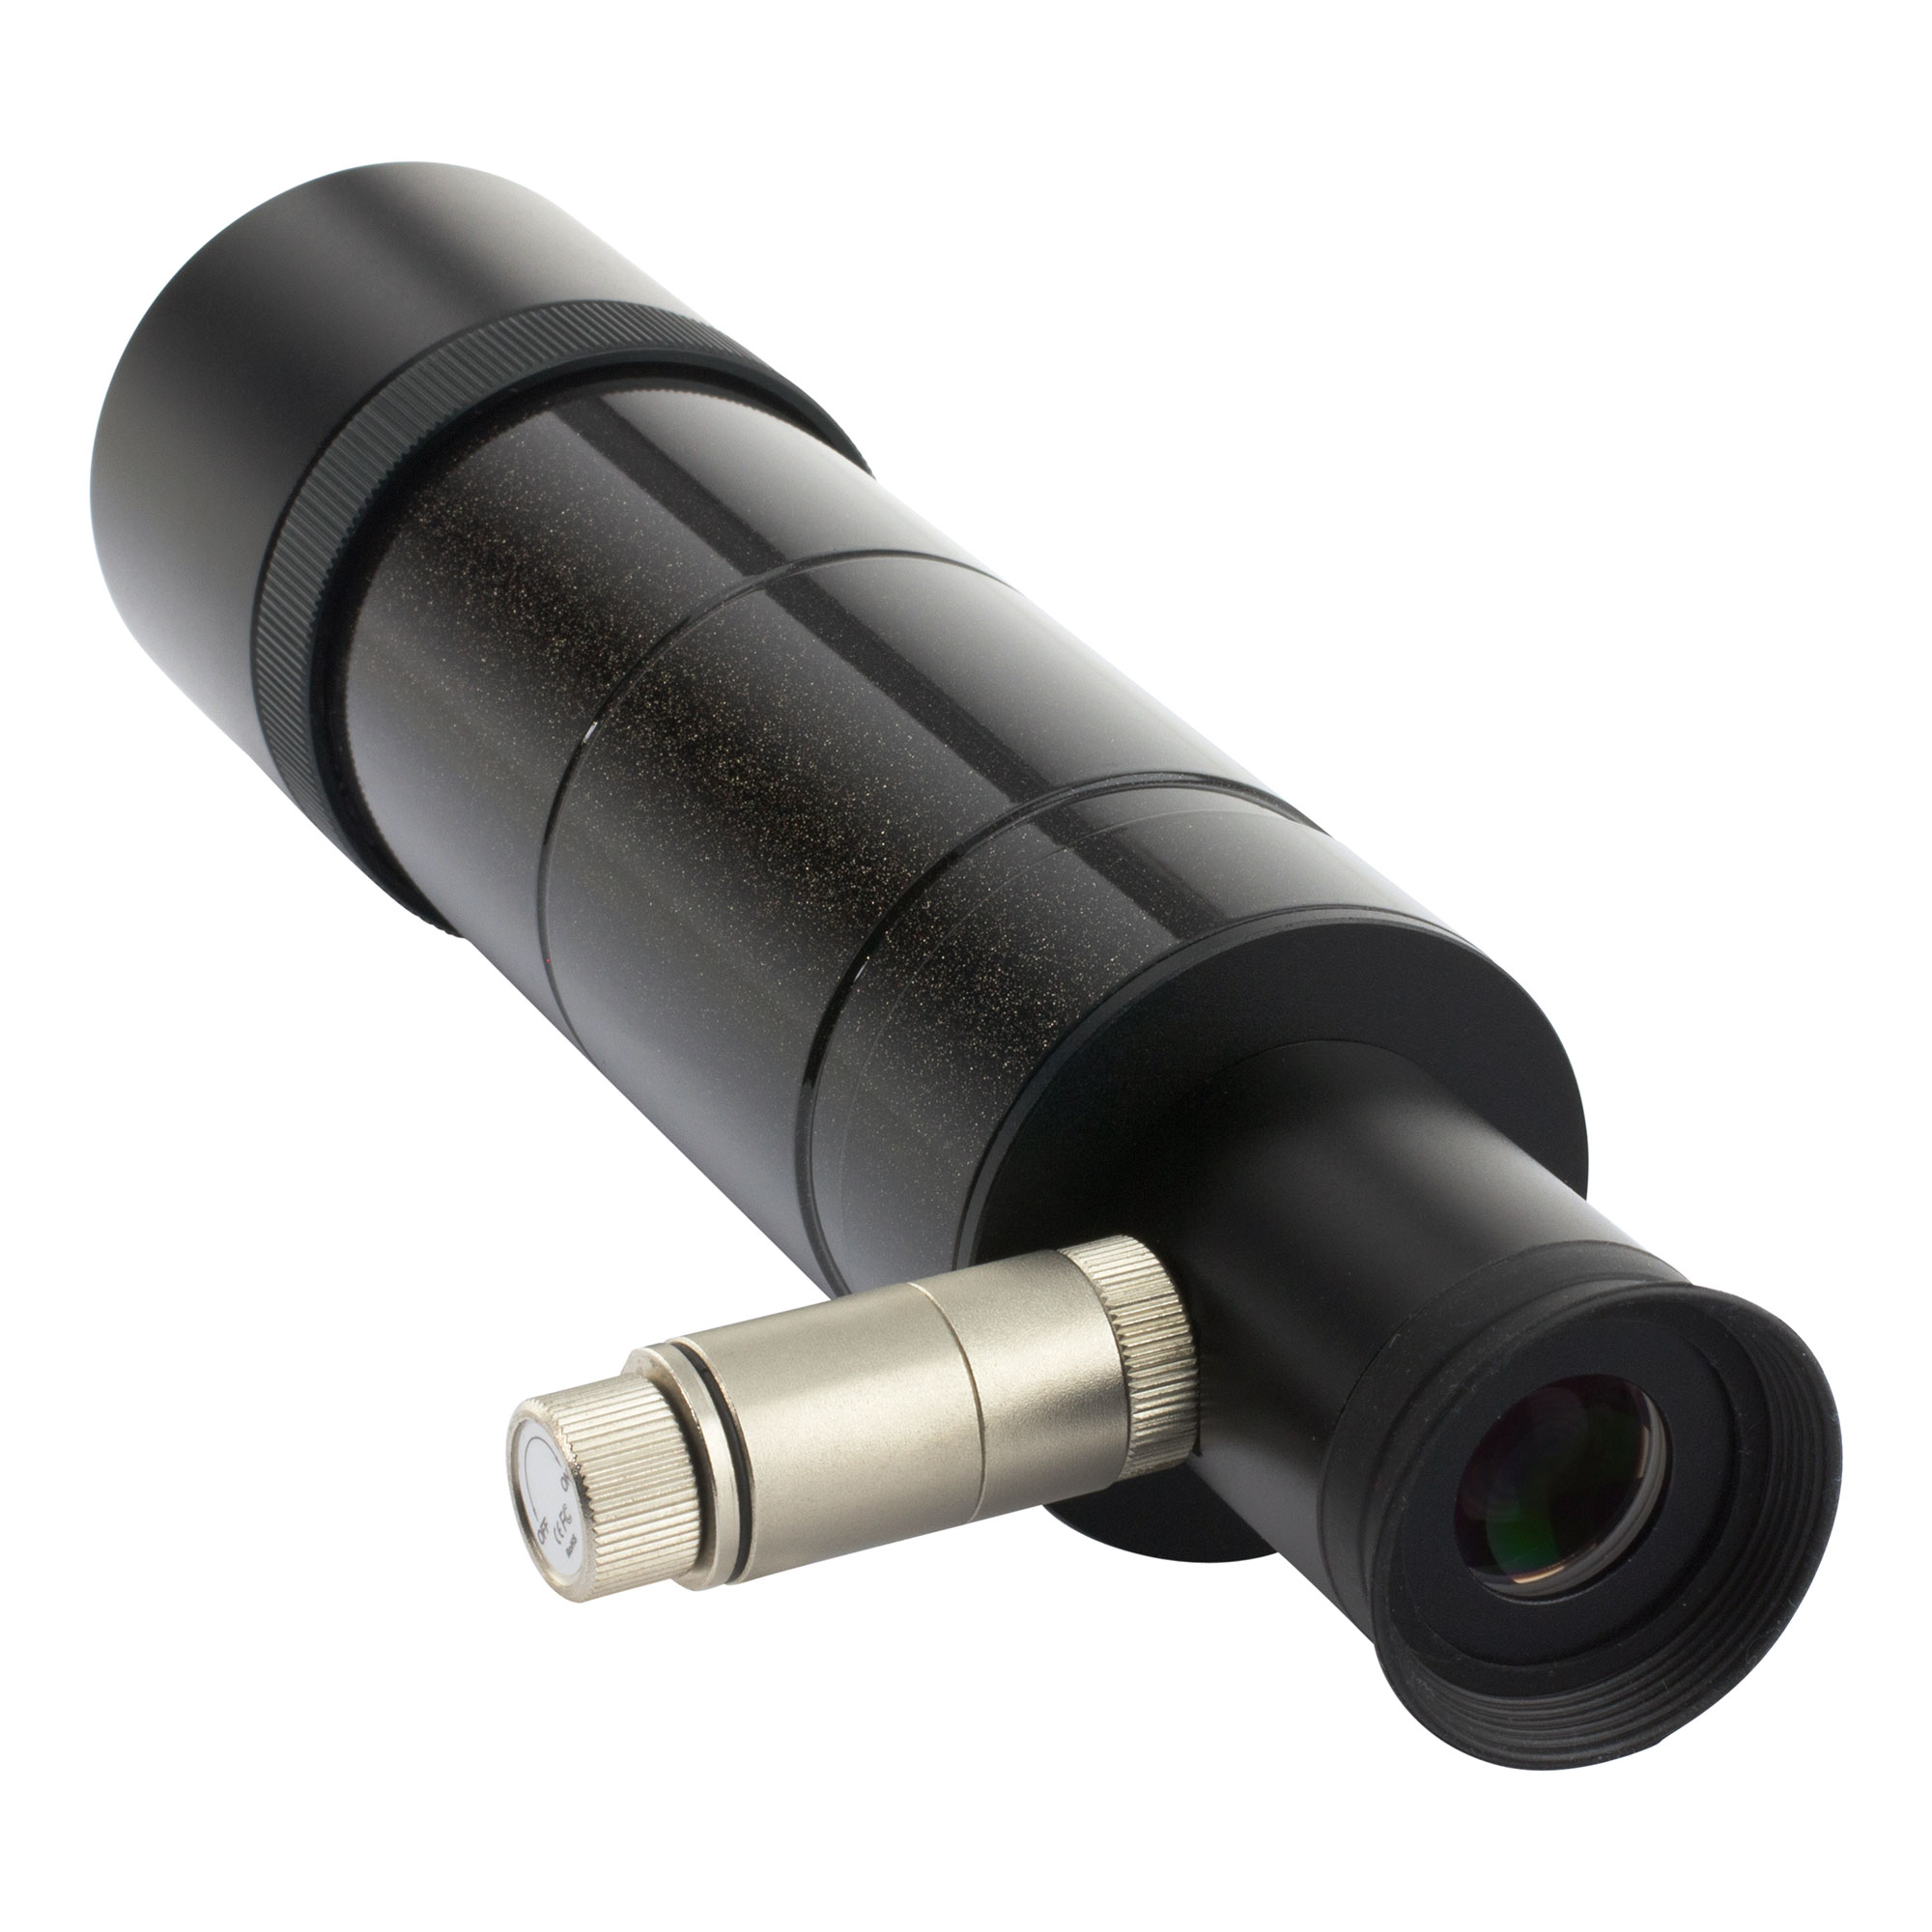 Skywatcher 9x50 Illuminated Finderscope